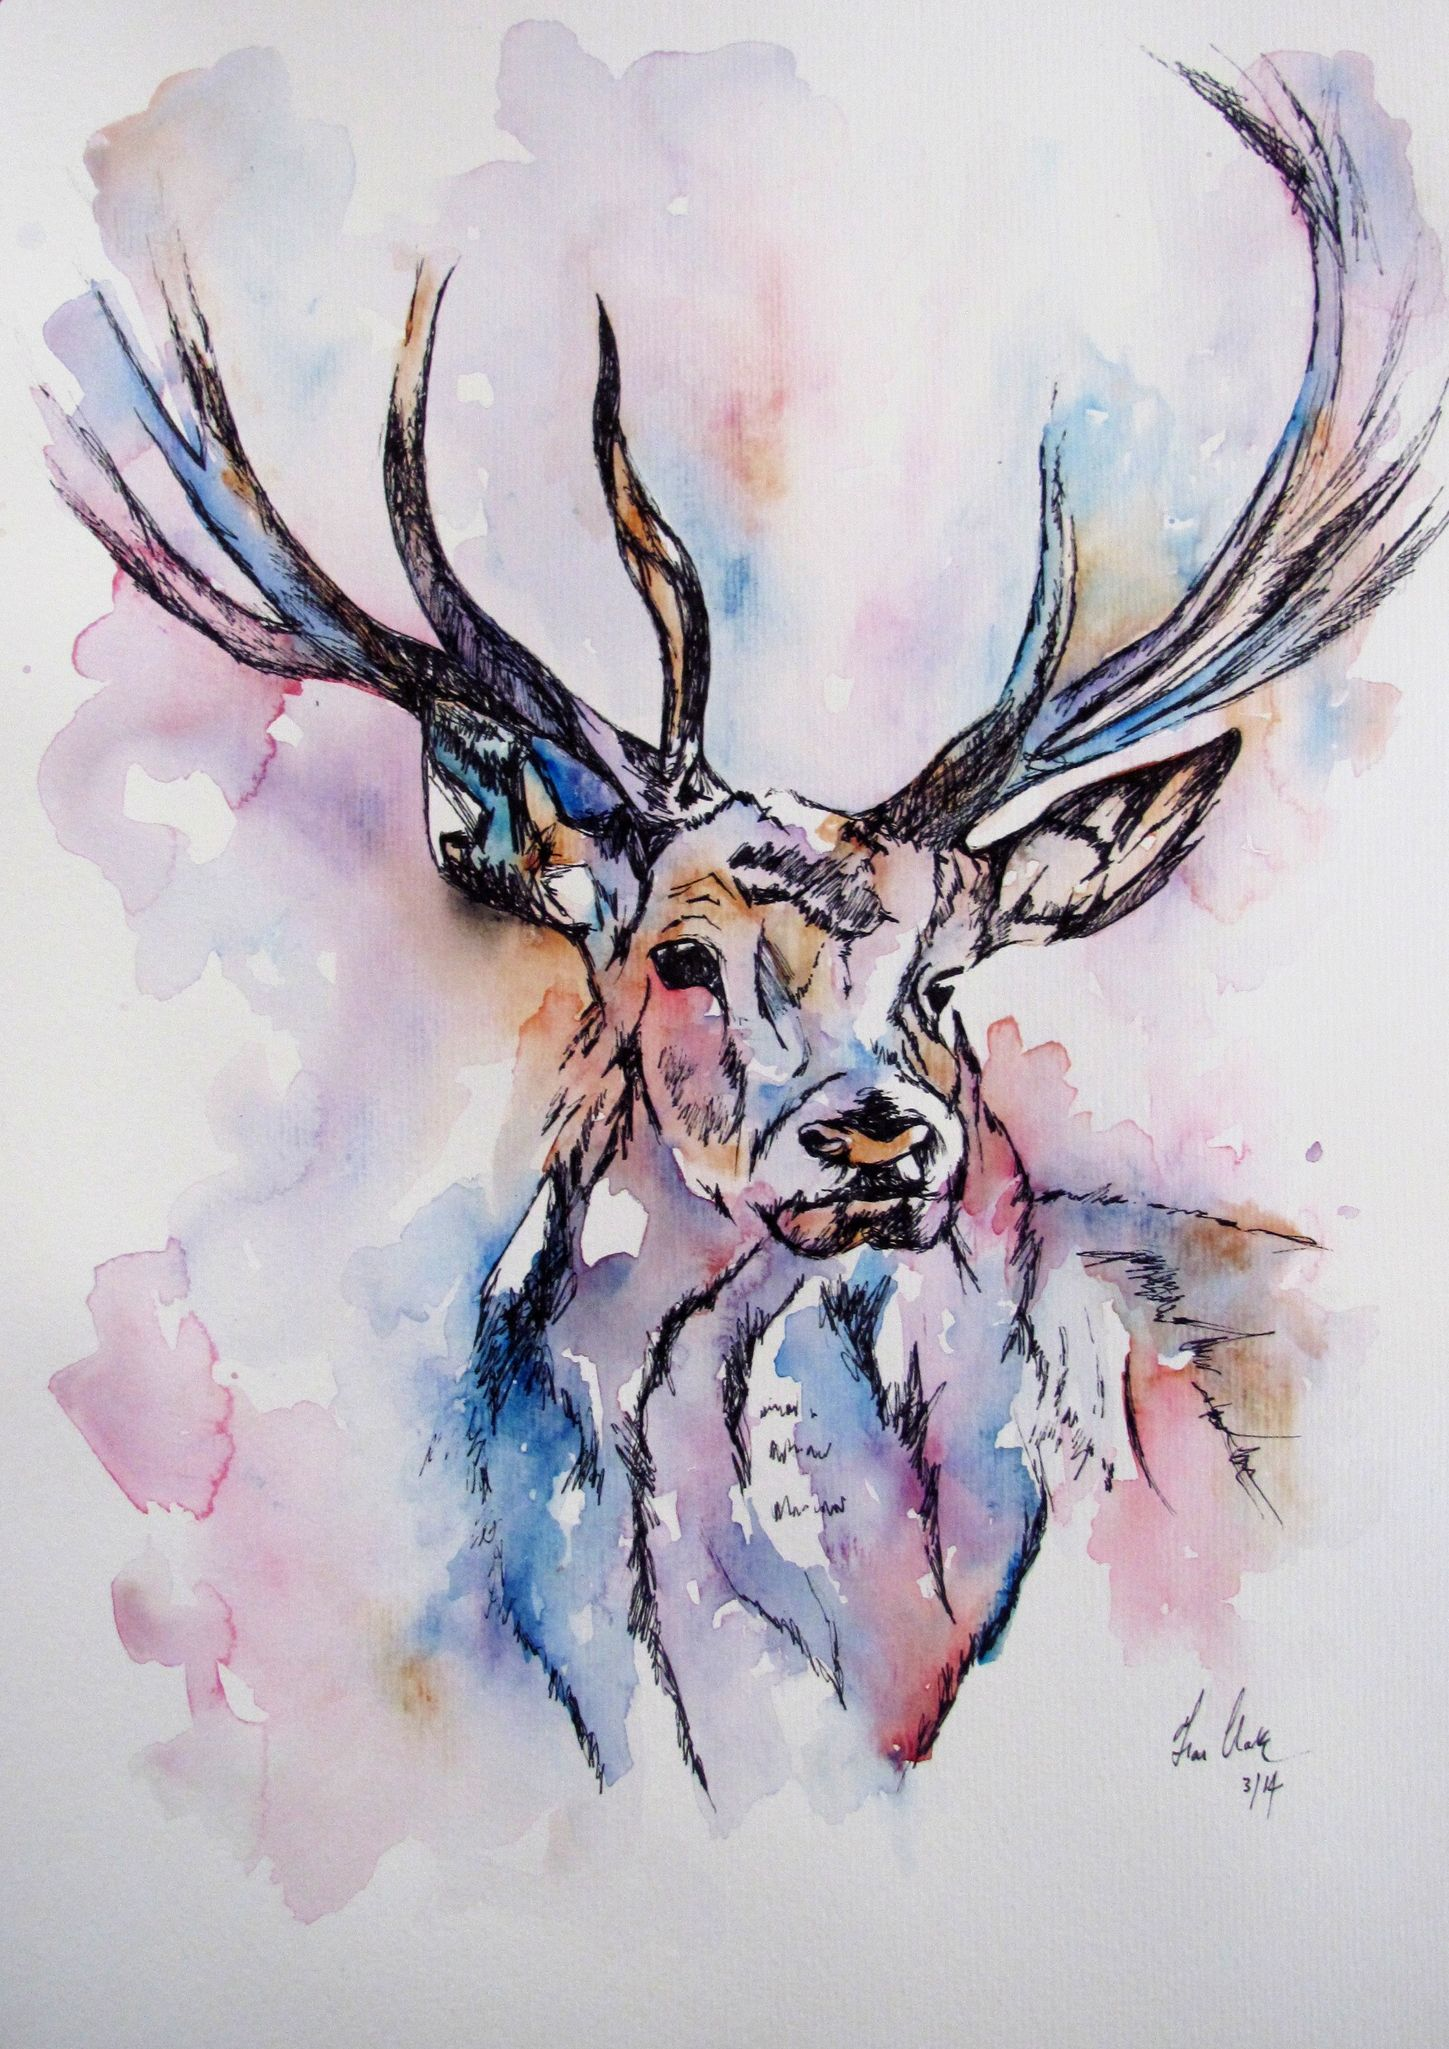 Colourful Deer Illustration Watercolor Painting Firka